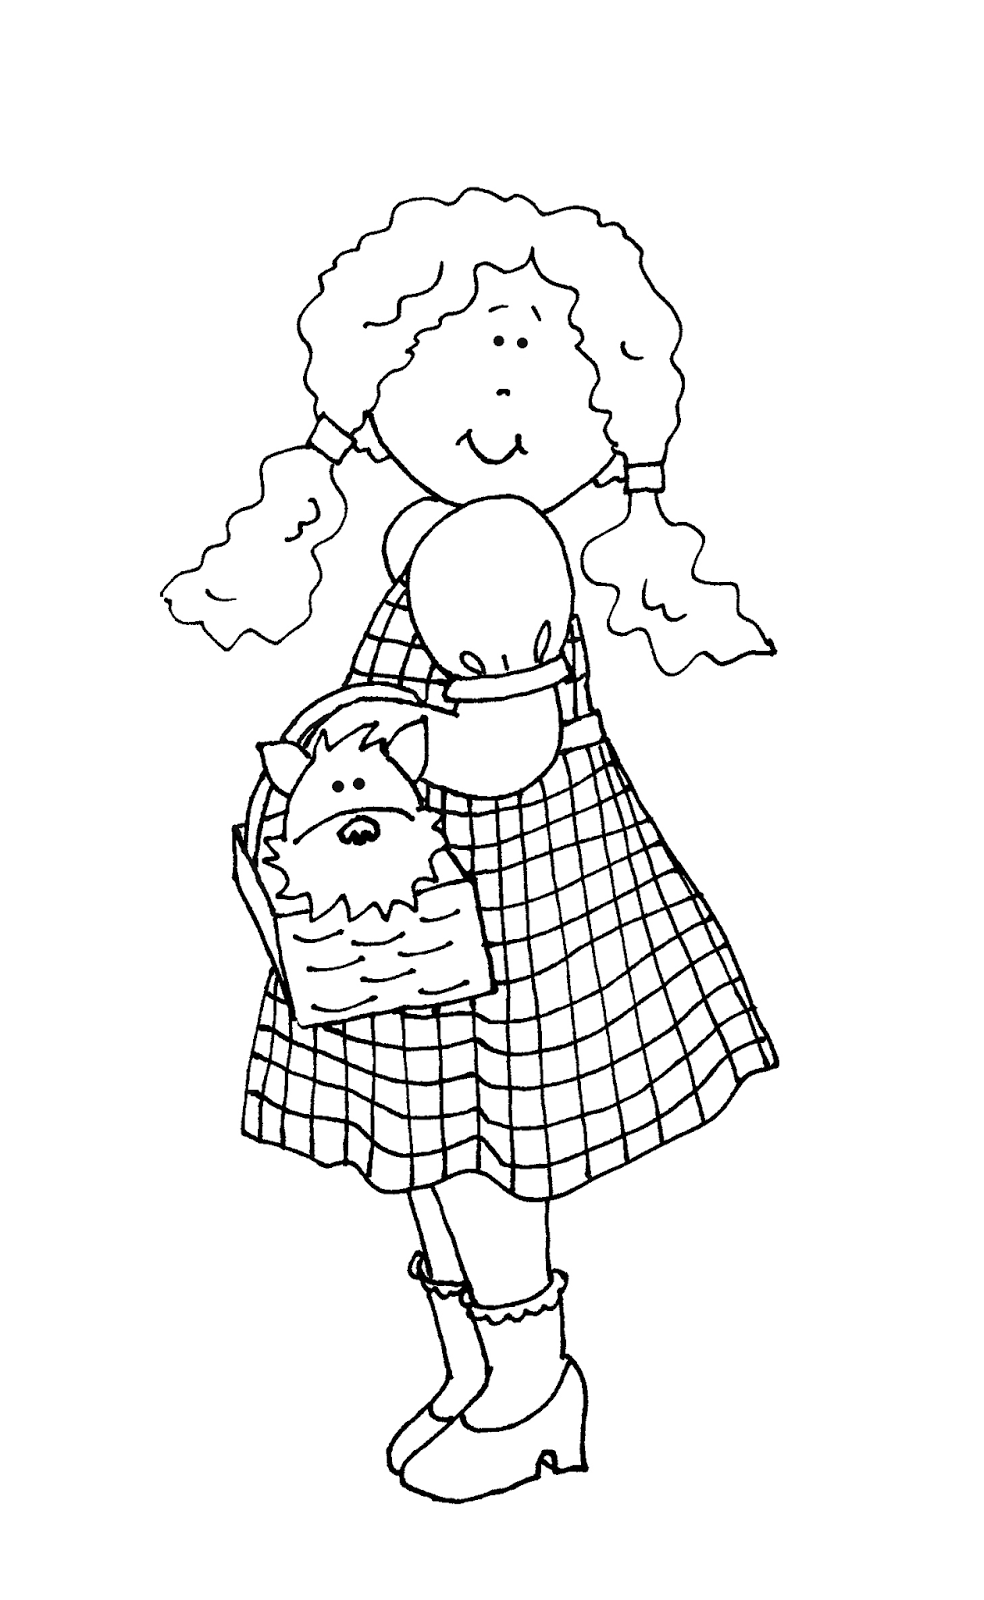 Free Dearie Dolls Digi Stamps From The Wizard of Oz. jwt   Digi ...